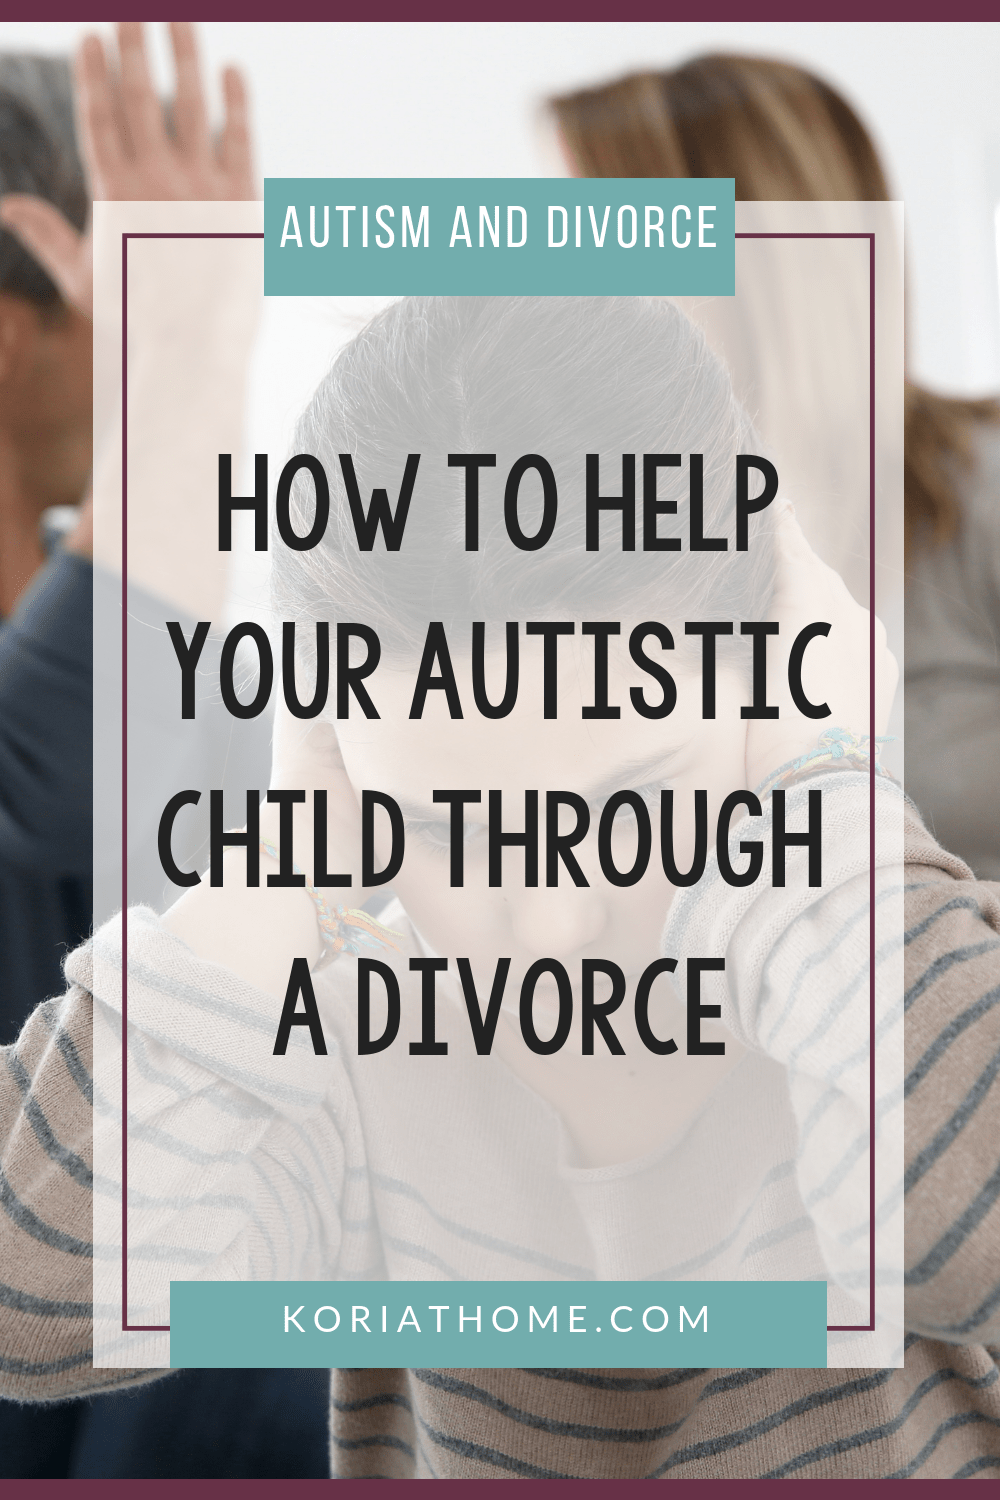 Addressing Autism and Divorce: What To Do When Your Marriage Crumbles 3